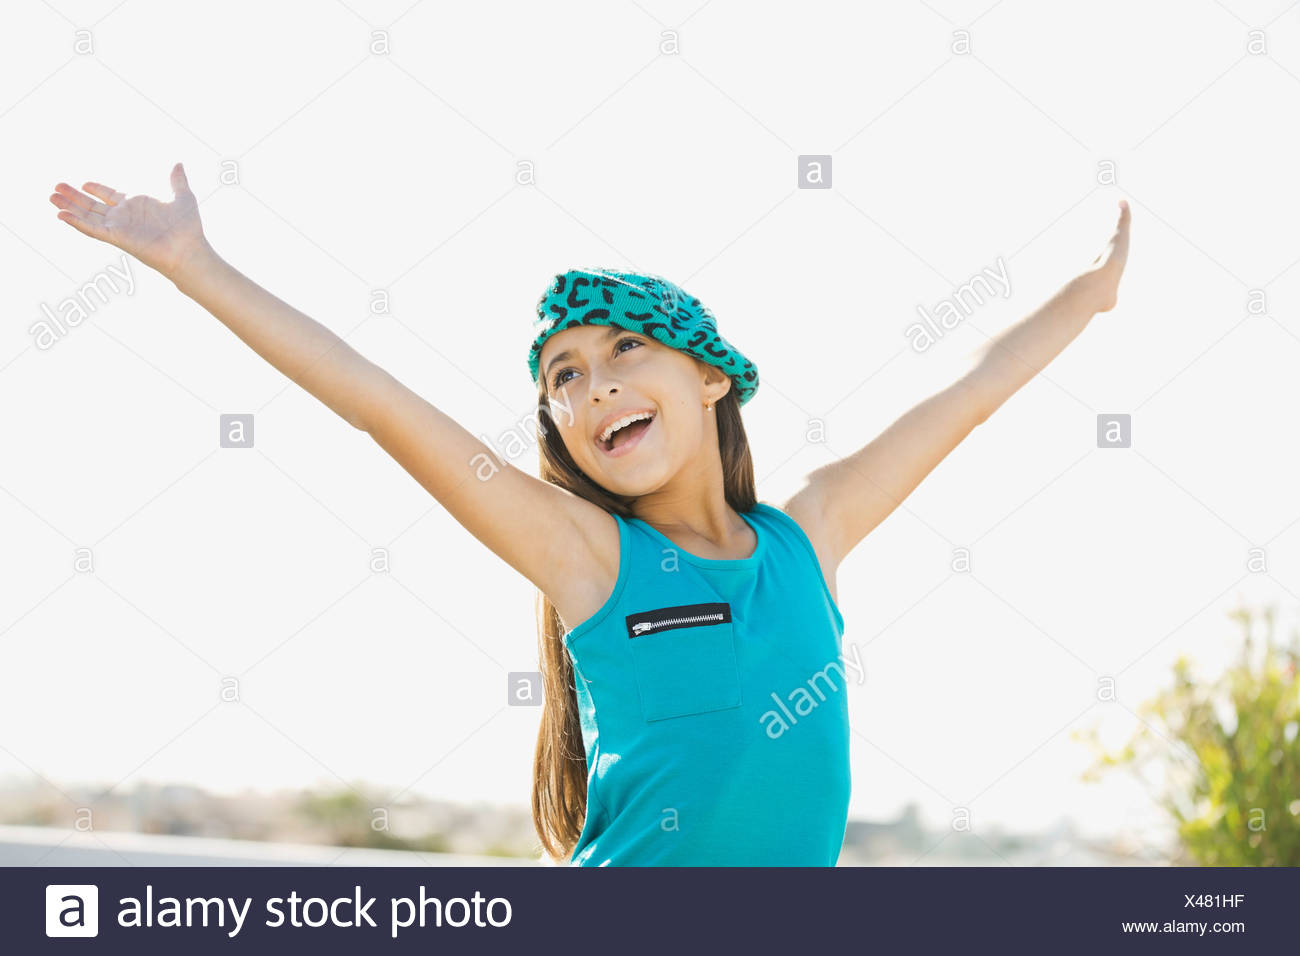 Girl with arms raised outdoors - Stock Image